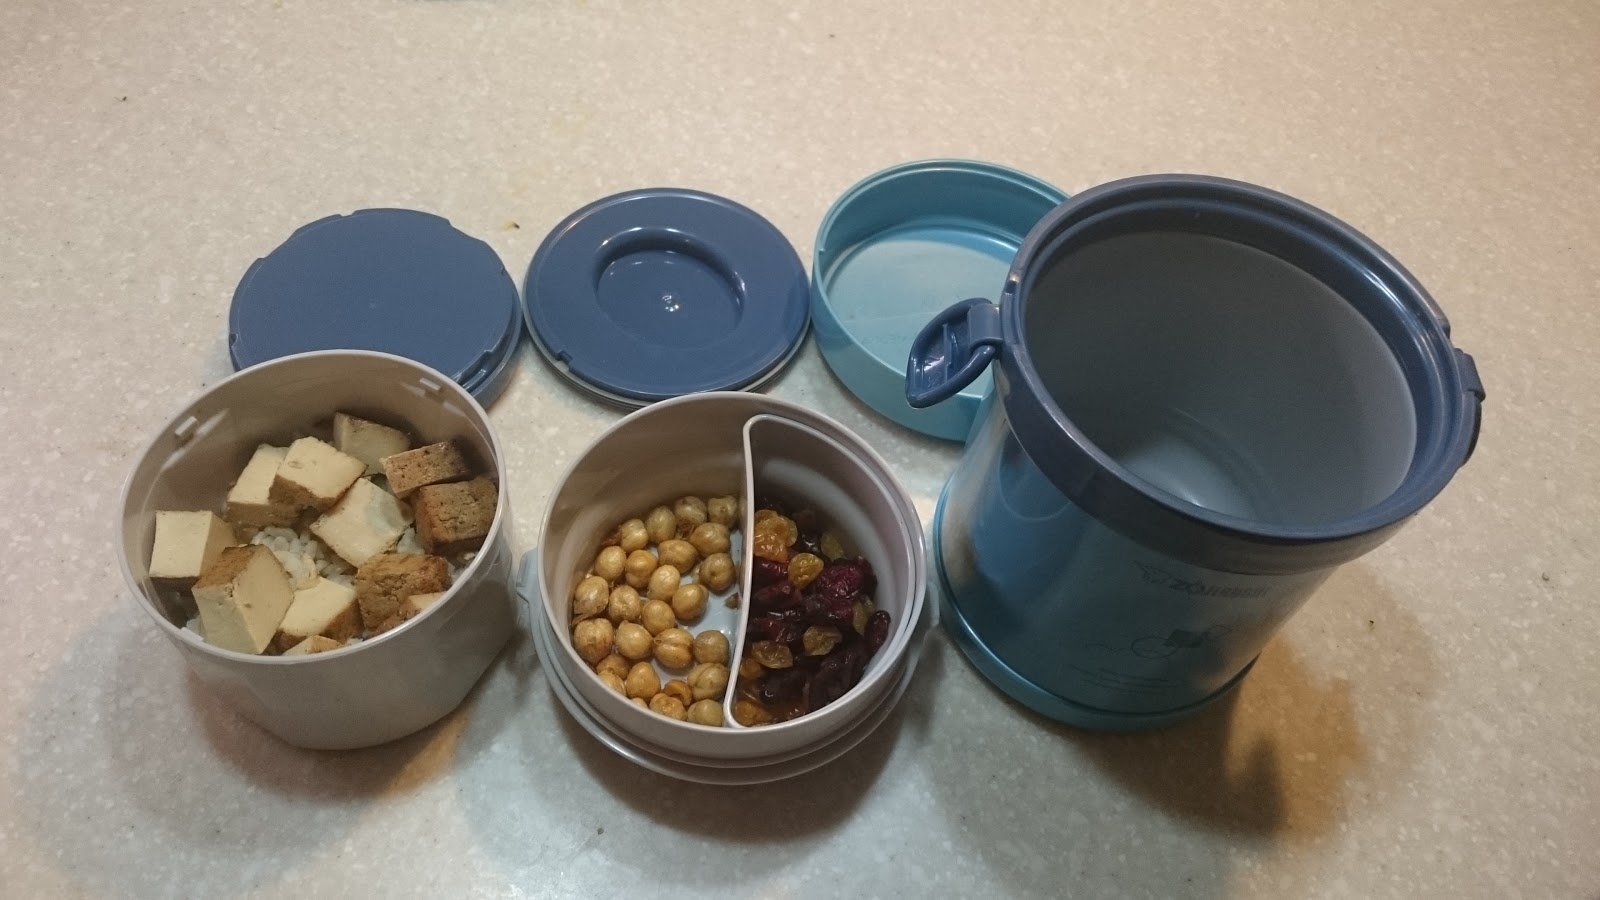 Hot lunch for your kid on a busy morning review of microwavable hot lunch for your kid on a busy morning review of microwavable thermos containers from zojirushi forumfinder Image collections